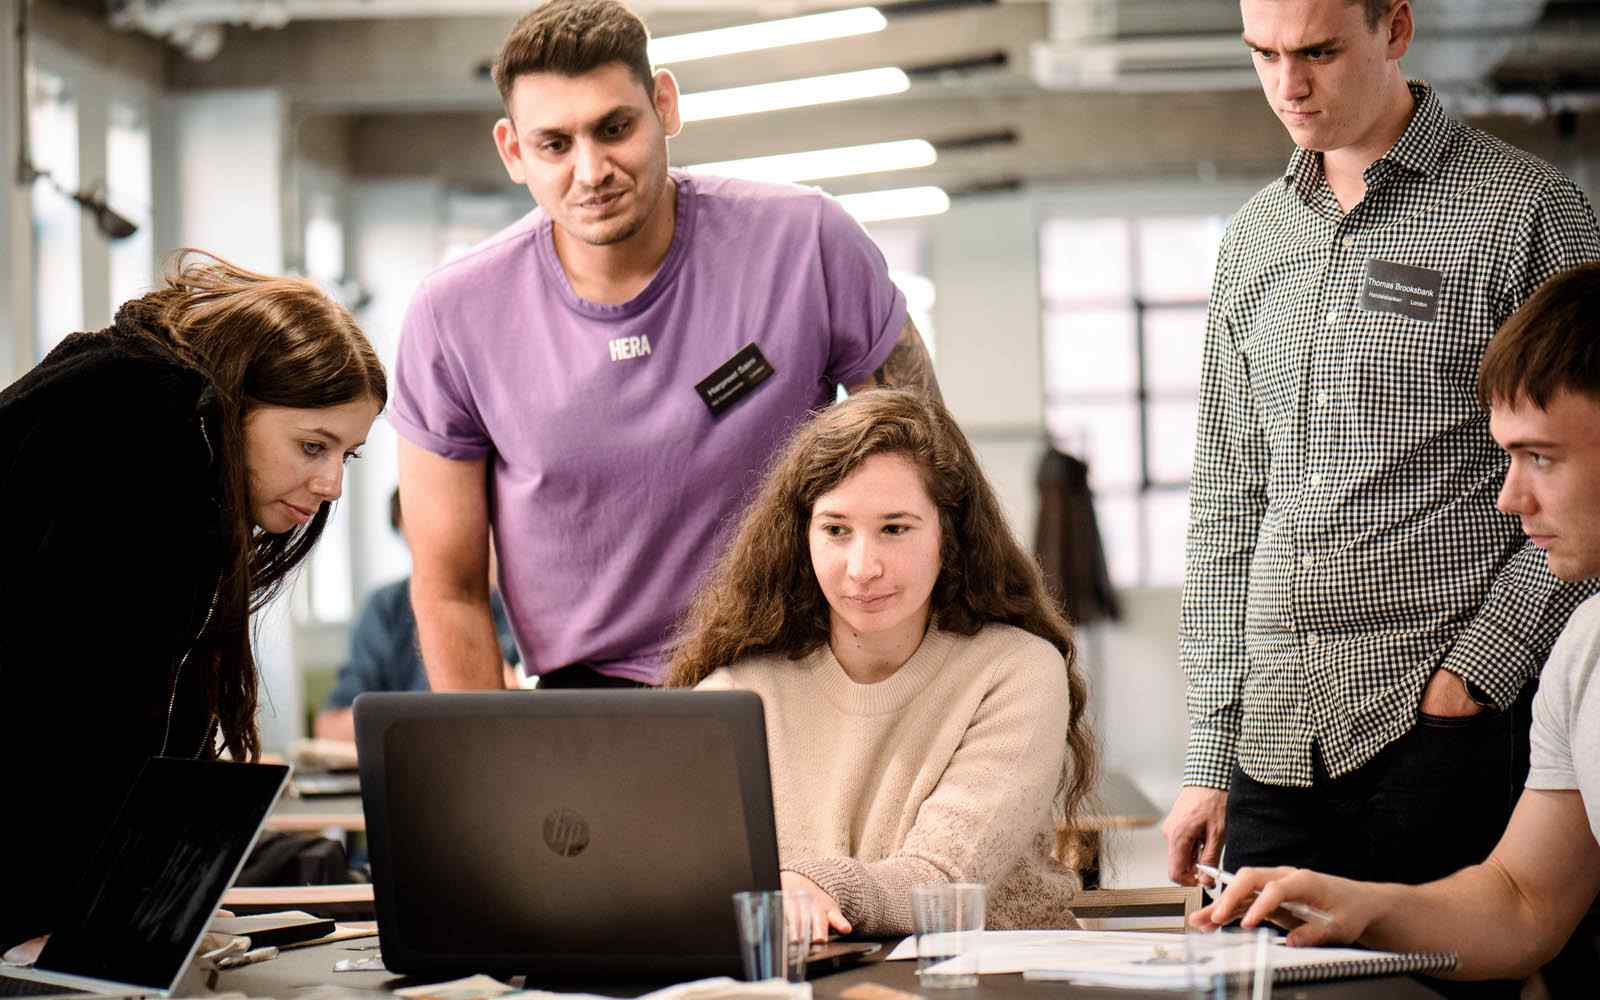 Data science students gathered around a laptop at the London Campus